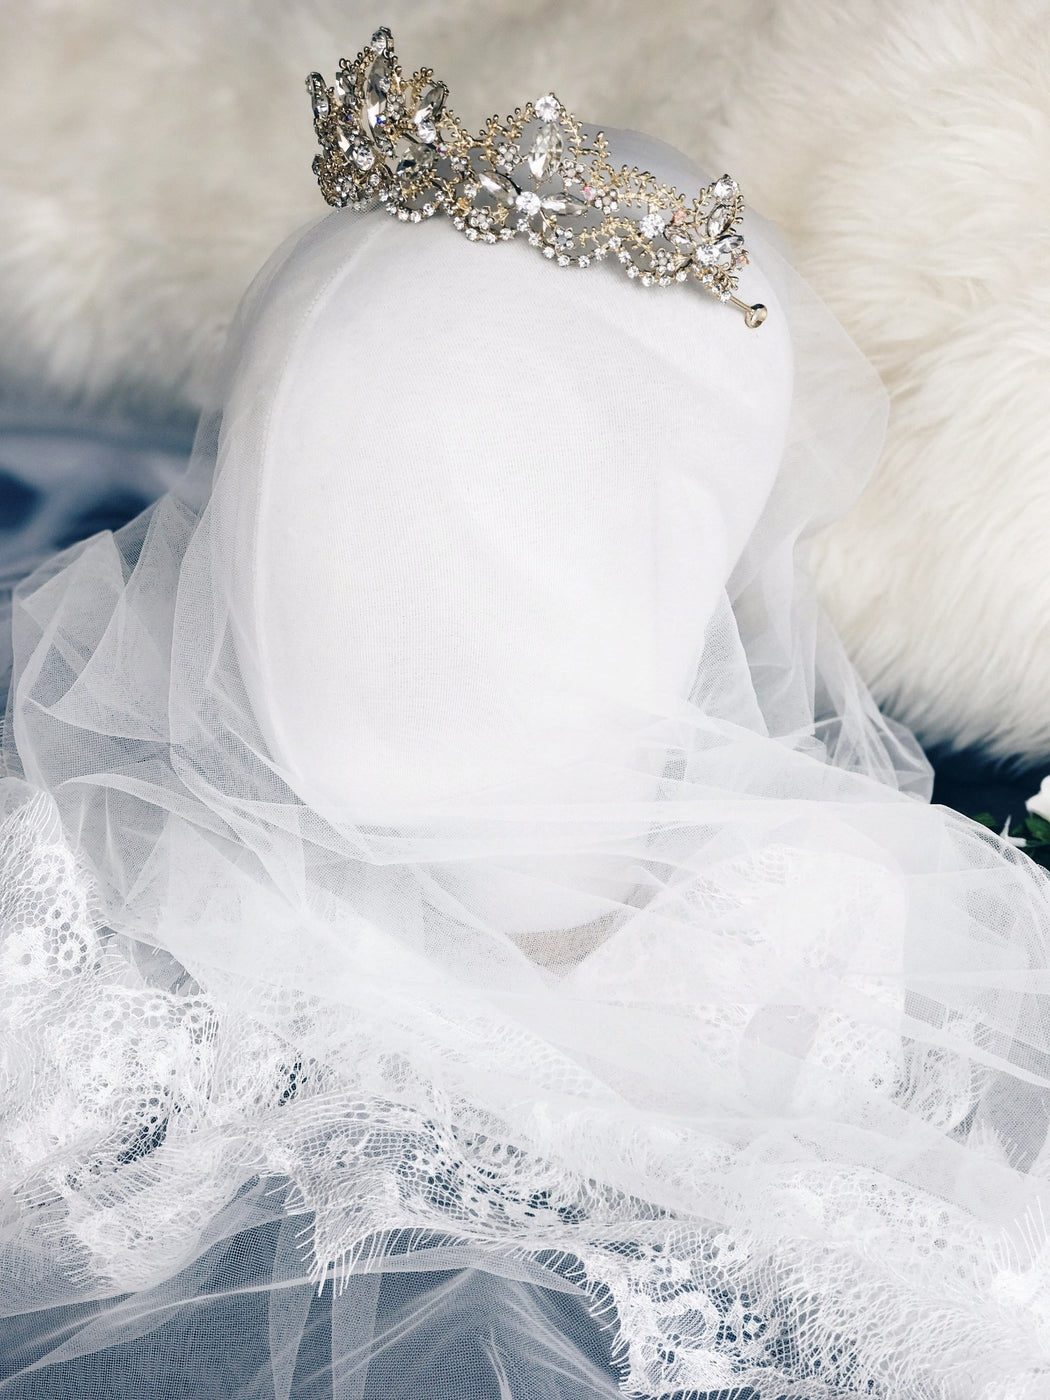 Silver Crystal Embellished bridal Crown wedding hair bride hairstyles formal hairstyle